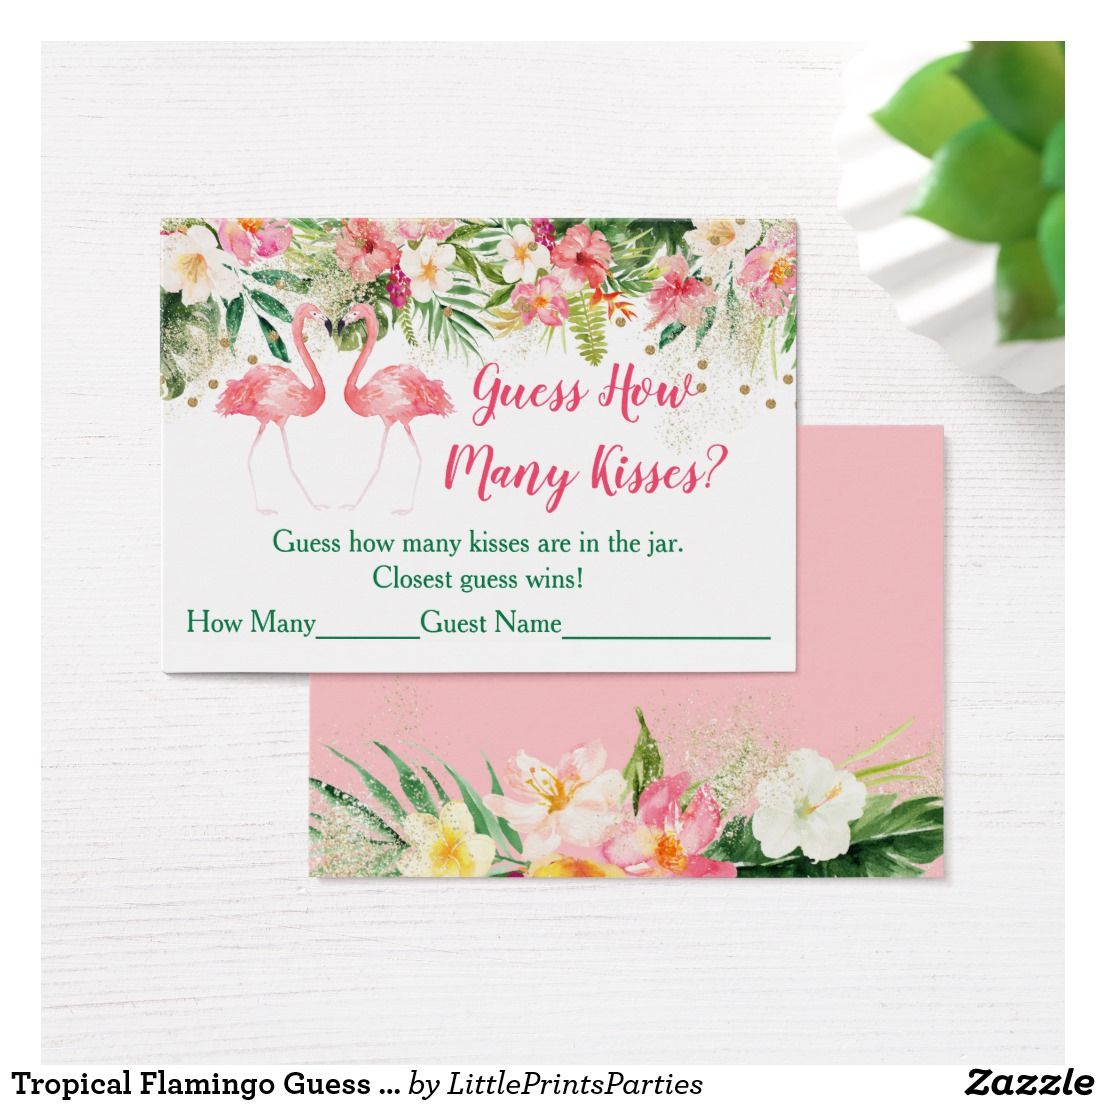 Tropical Flamingo Guess How Many Kisses Game